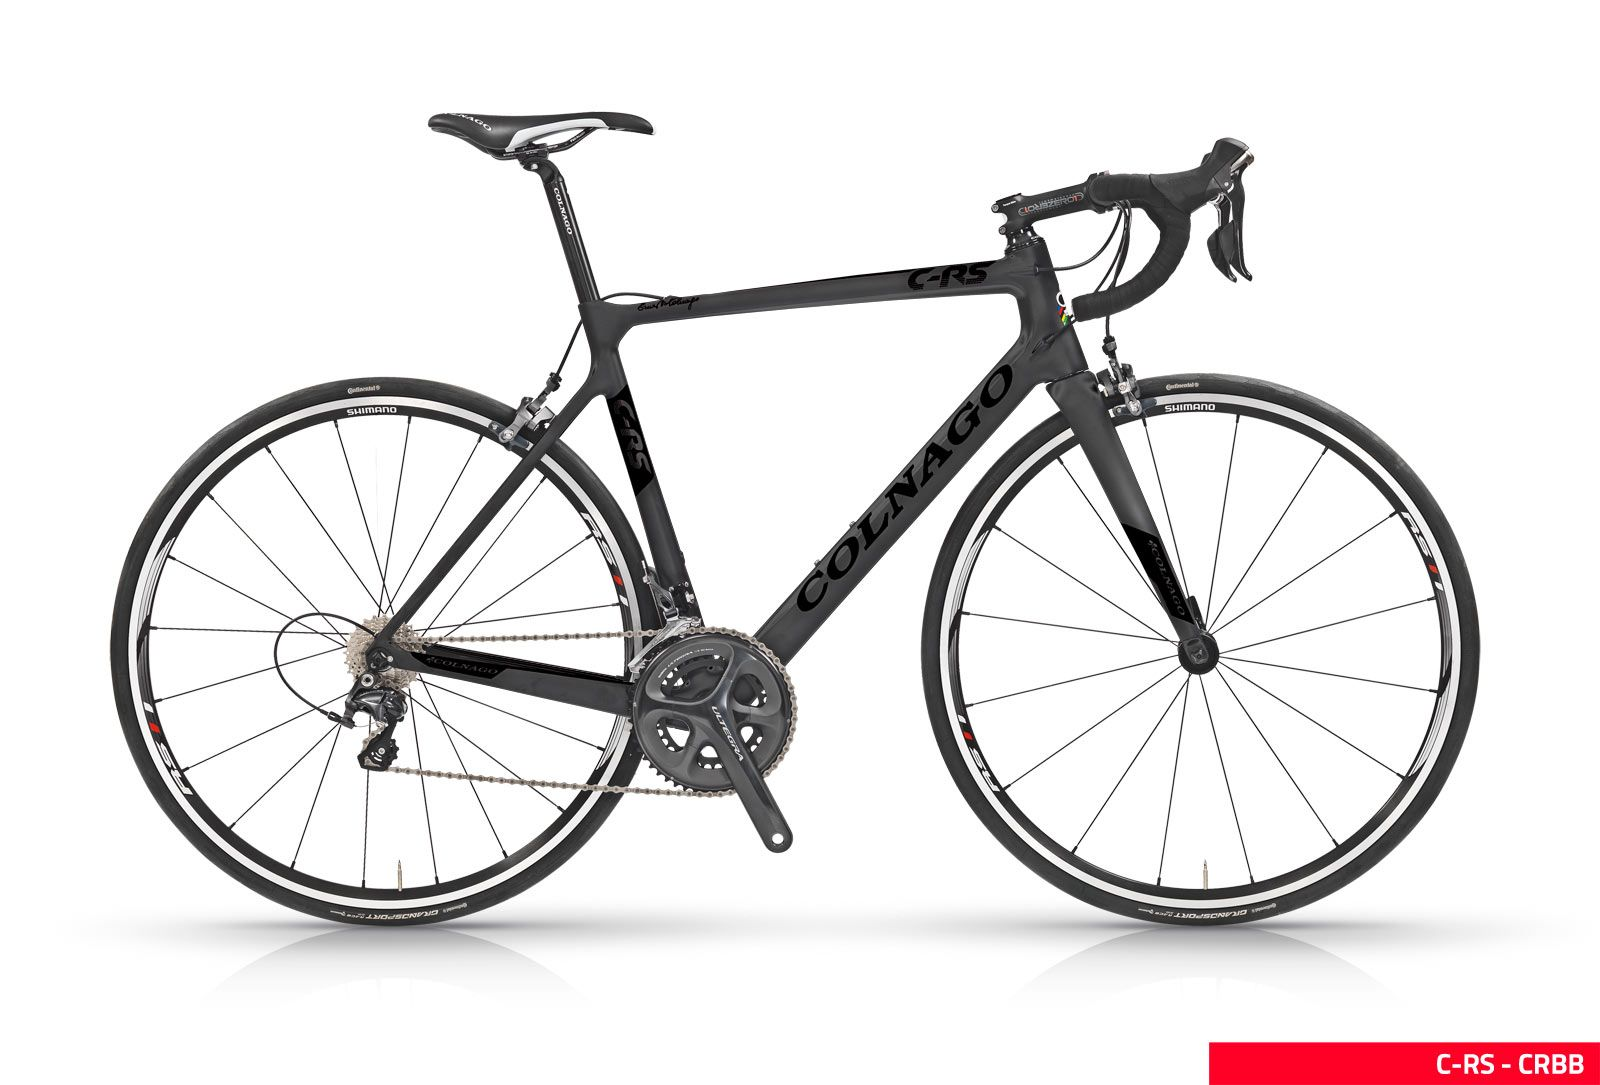 Colnago-CRS-CRBB | italian race bikes when only the best will do ...